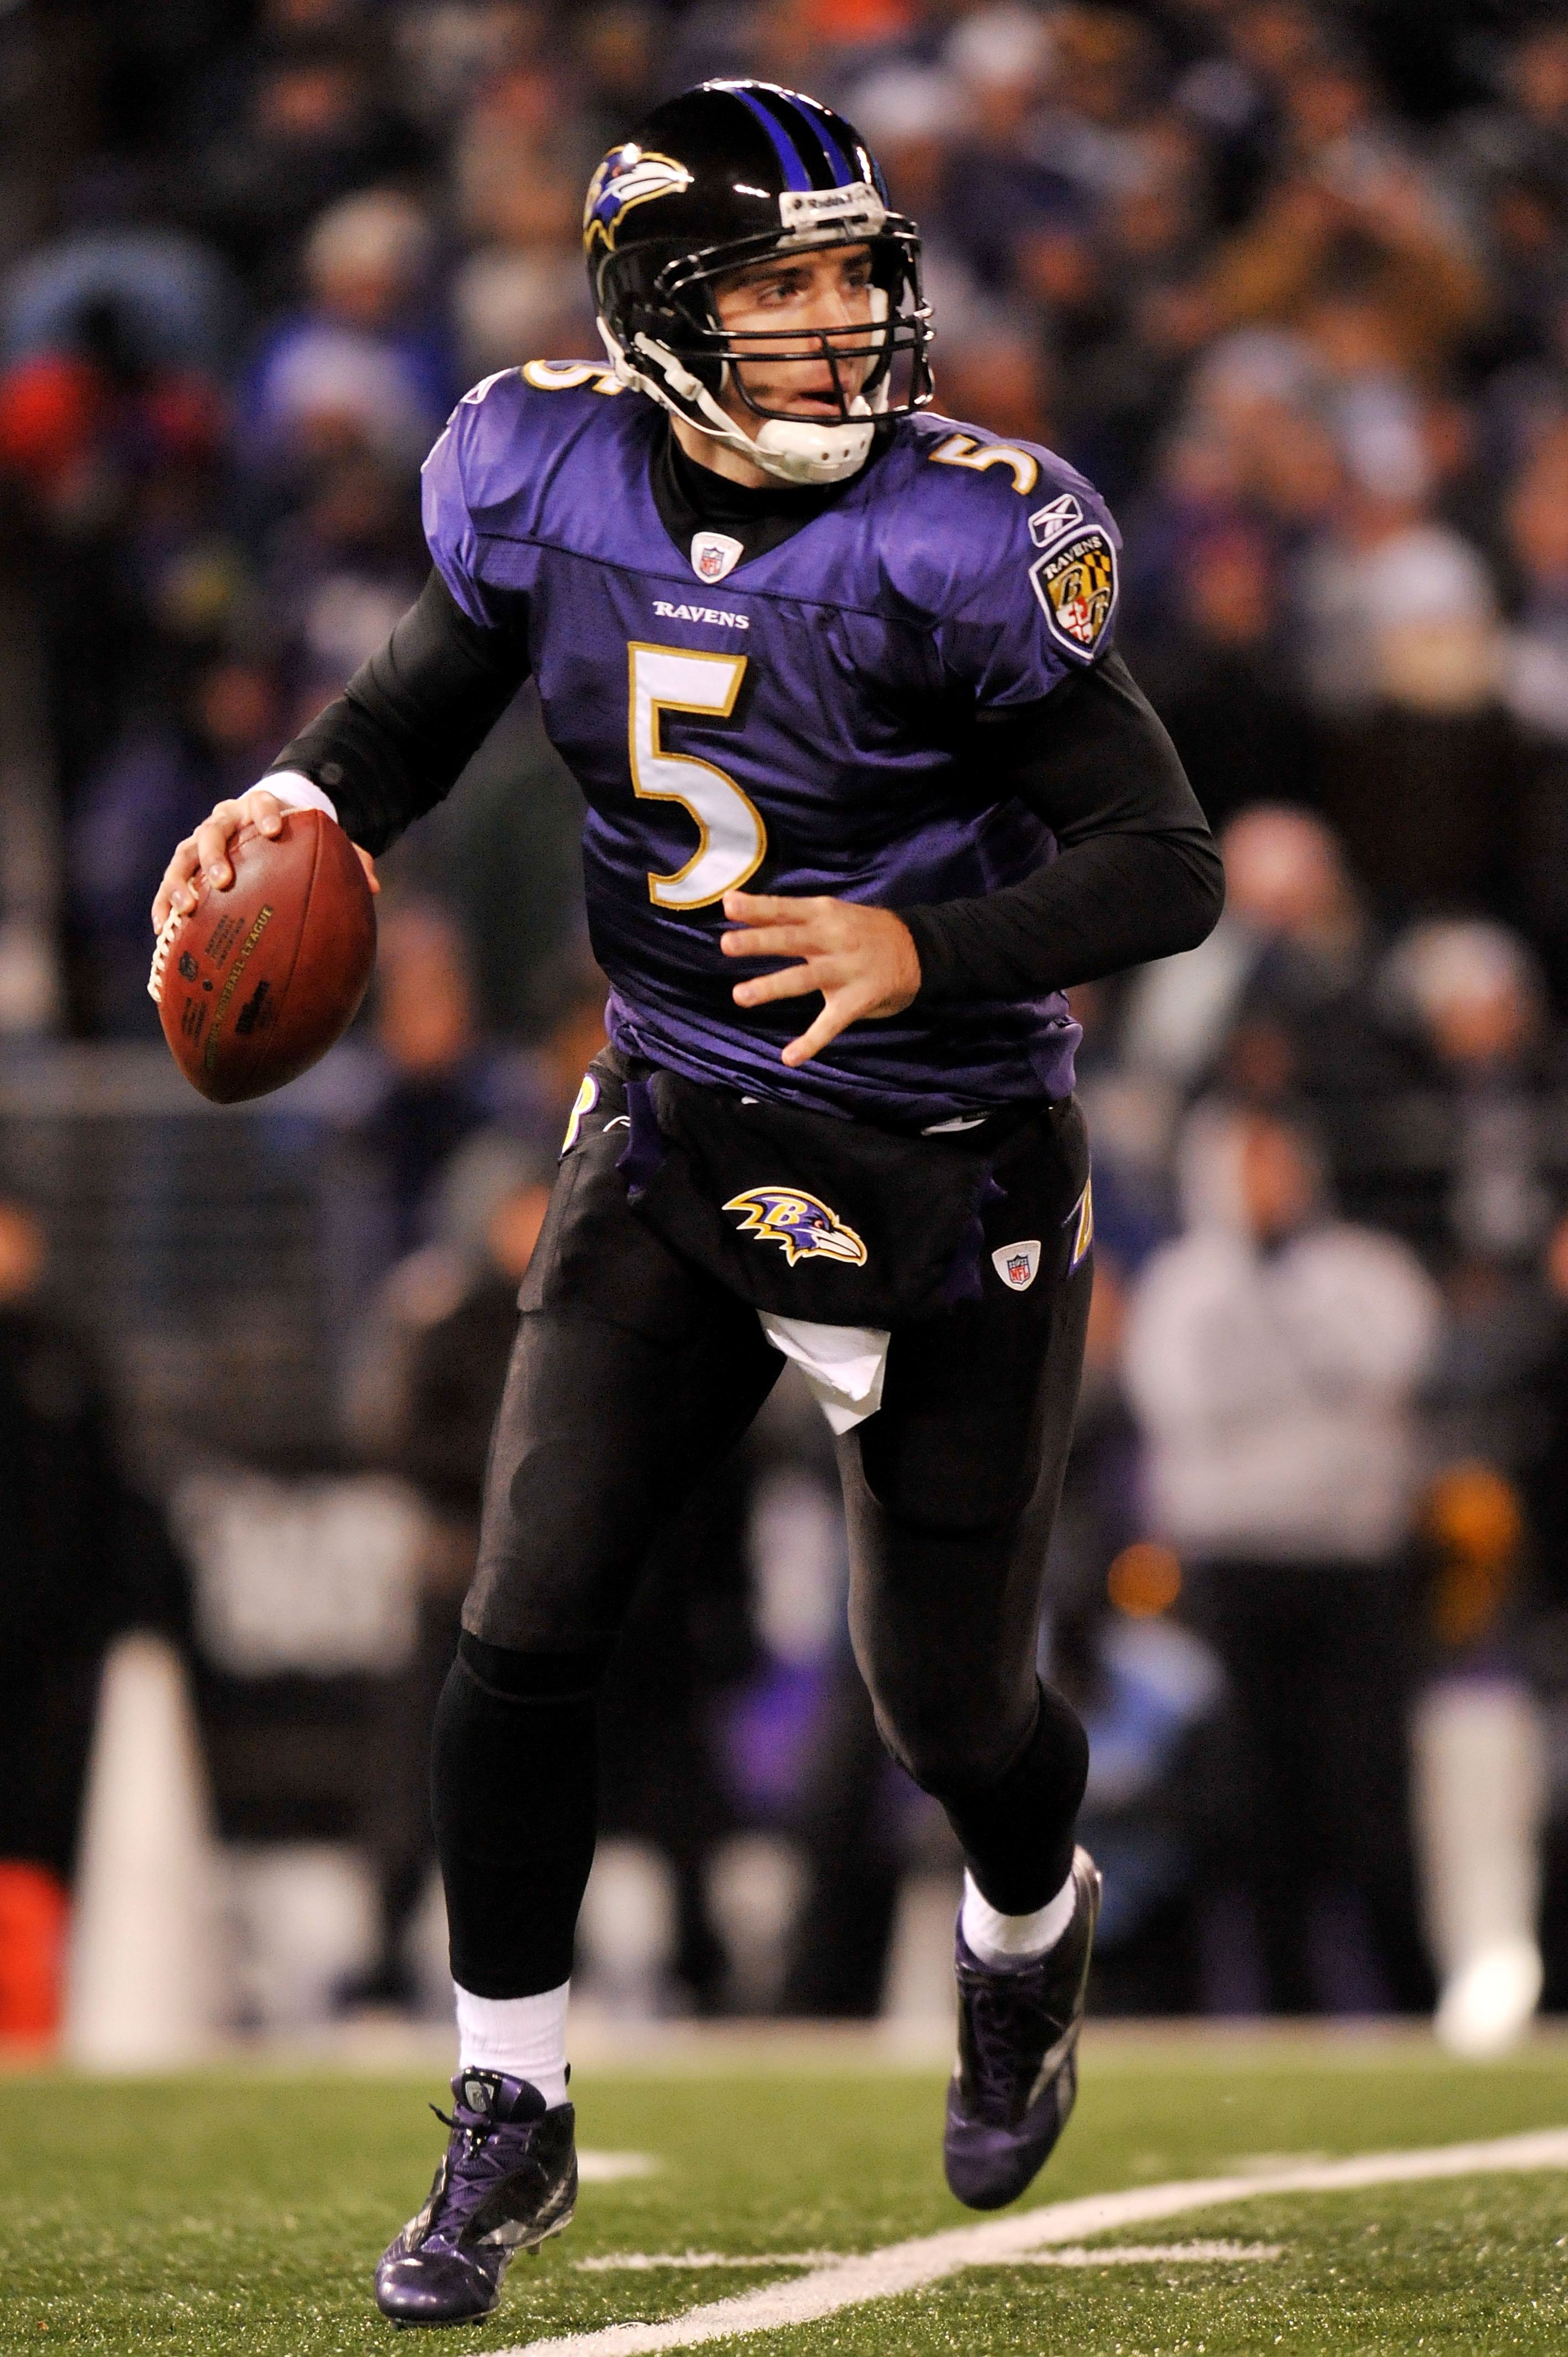 BALTIMORE, MD - DECEMBER 05:  Quarterback Joe Flacco #5 of the Baltimore Ravens looks to pass against the Pittsburgh Steelers during the first half of the game at M&T Bank Stadium on December 5, 2010 in Baltimore, Maryland.  (Photo by Larry French/Getty I